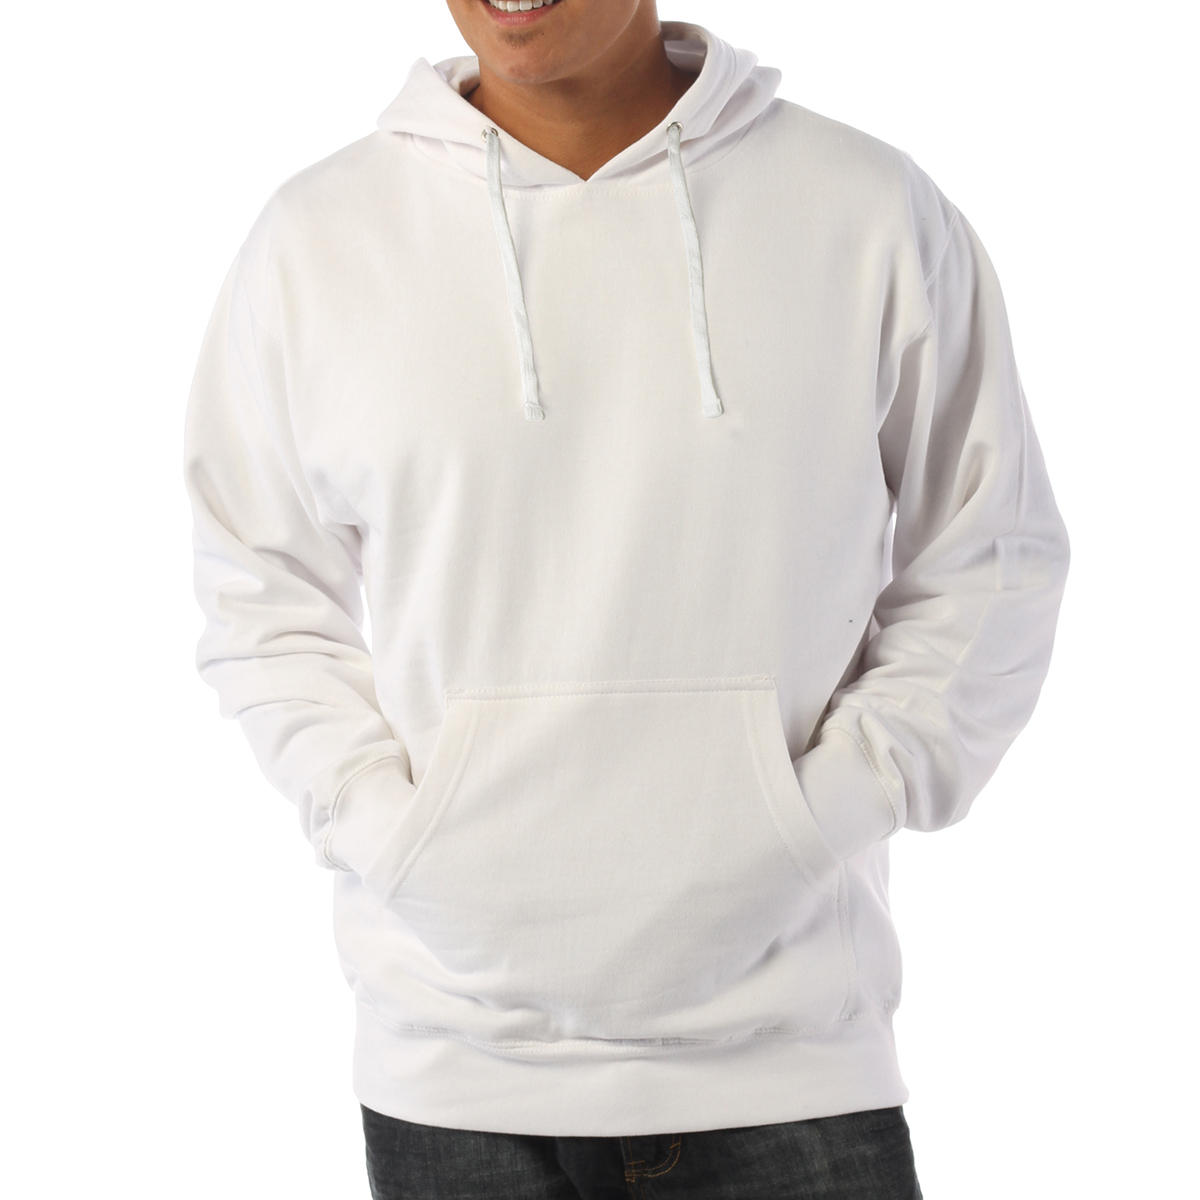 Independent Trading Co Midweight Hooded Pullover Sweatshirt SS4500 XS-3XL